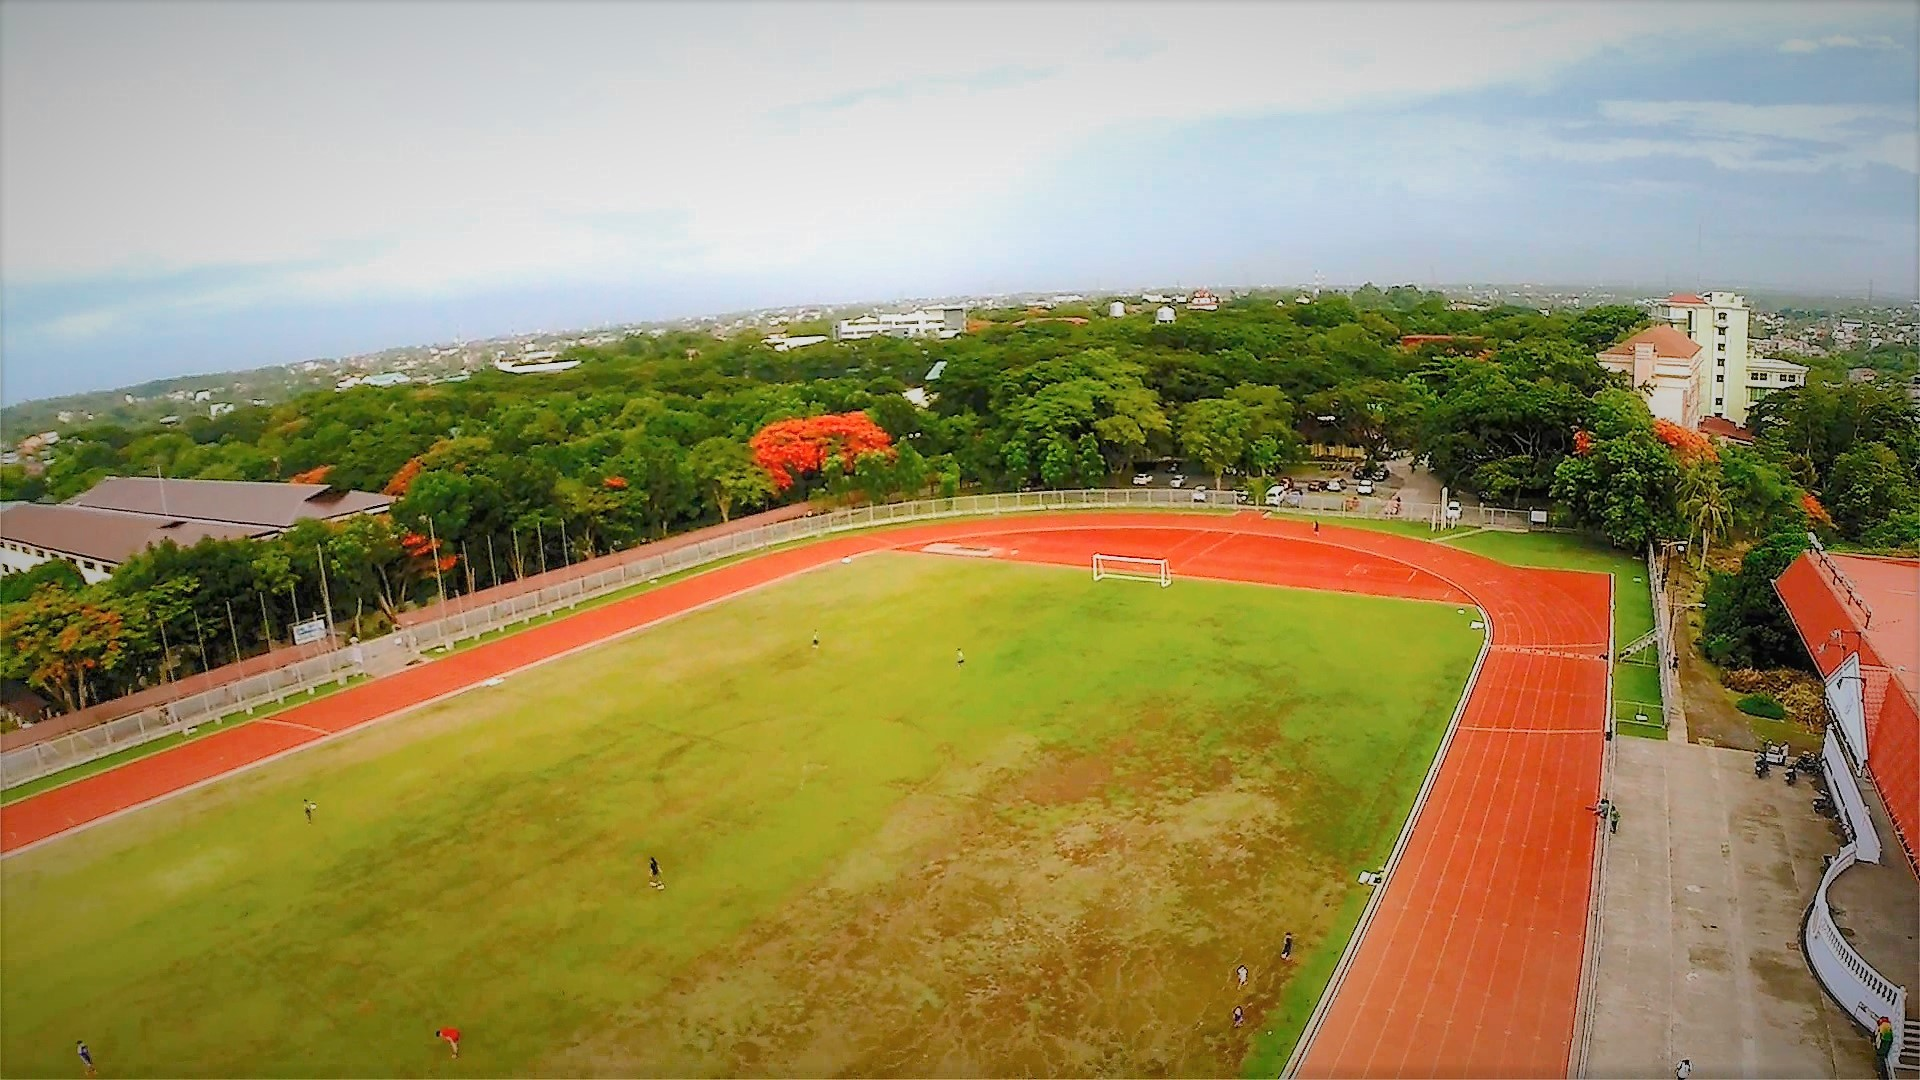 Track oval